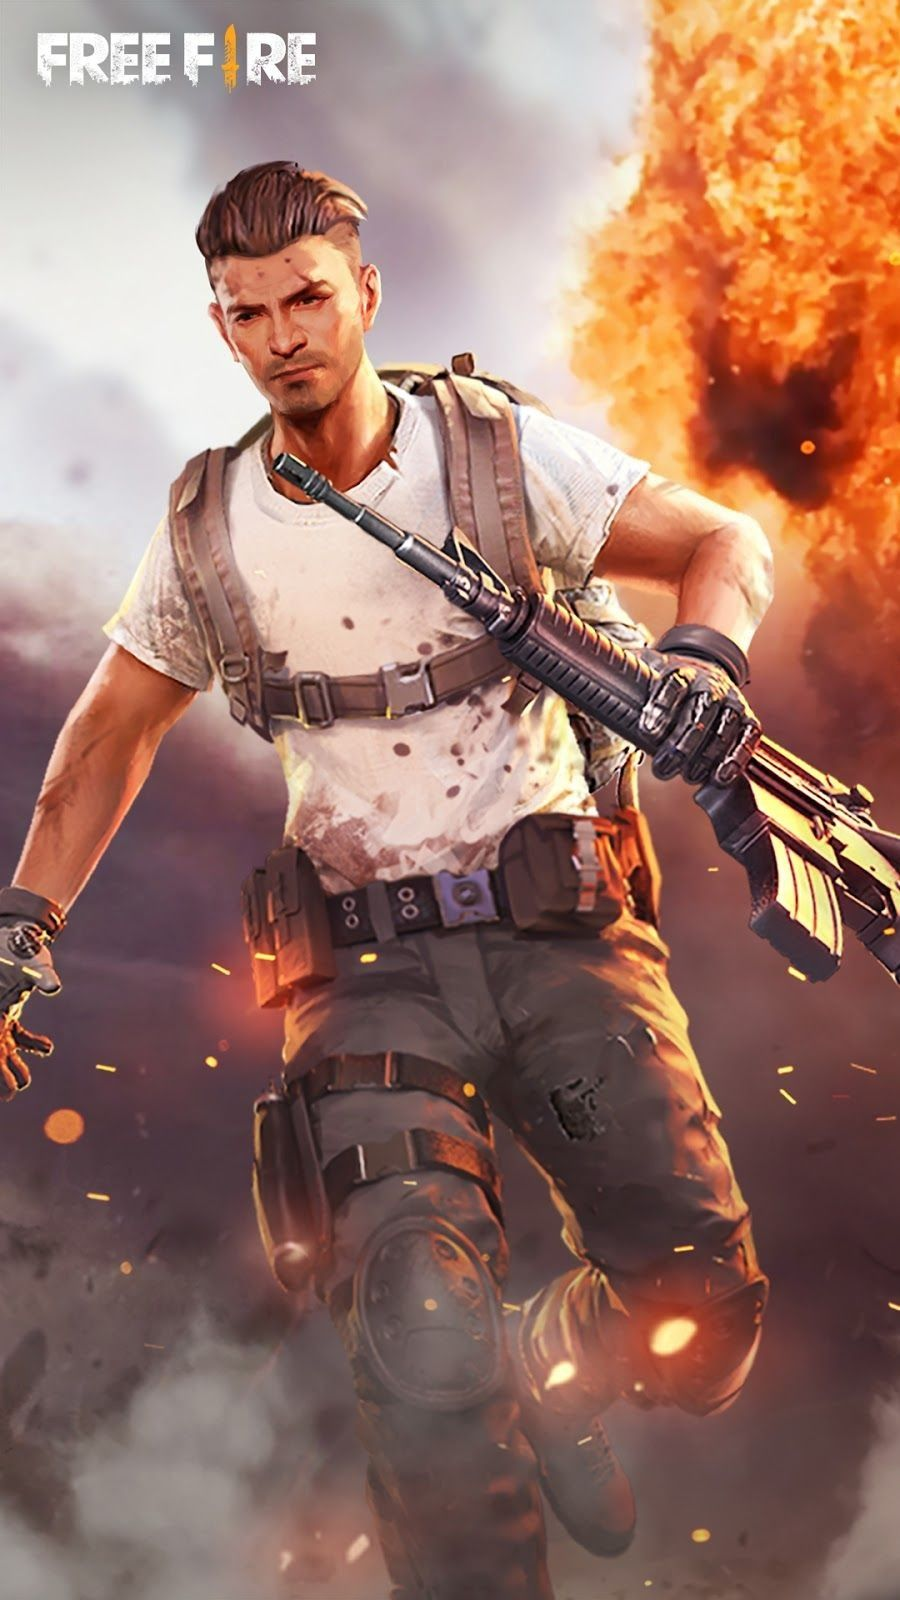 Wallpaper Free Fire Full Hd Fire Image Download Games Game Download Free